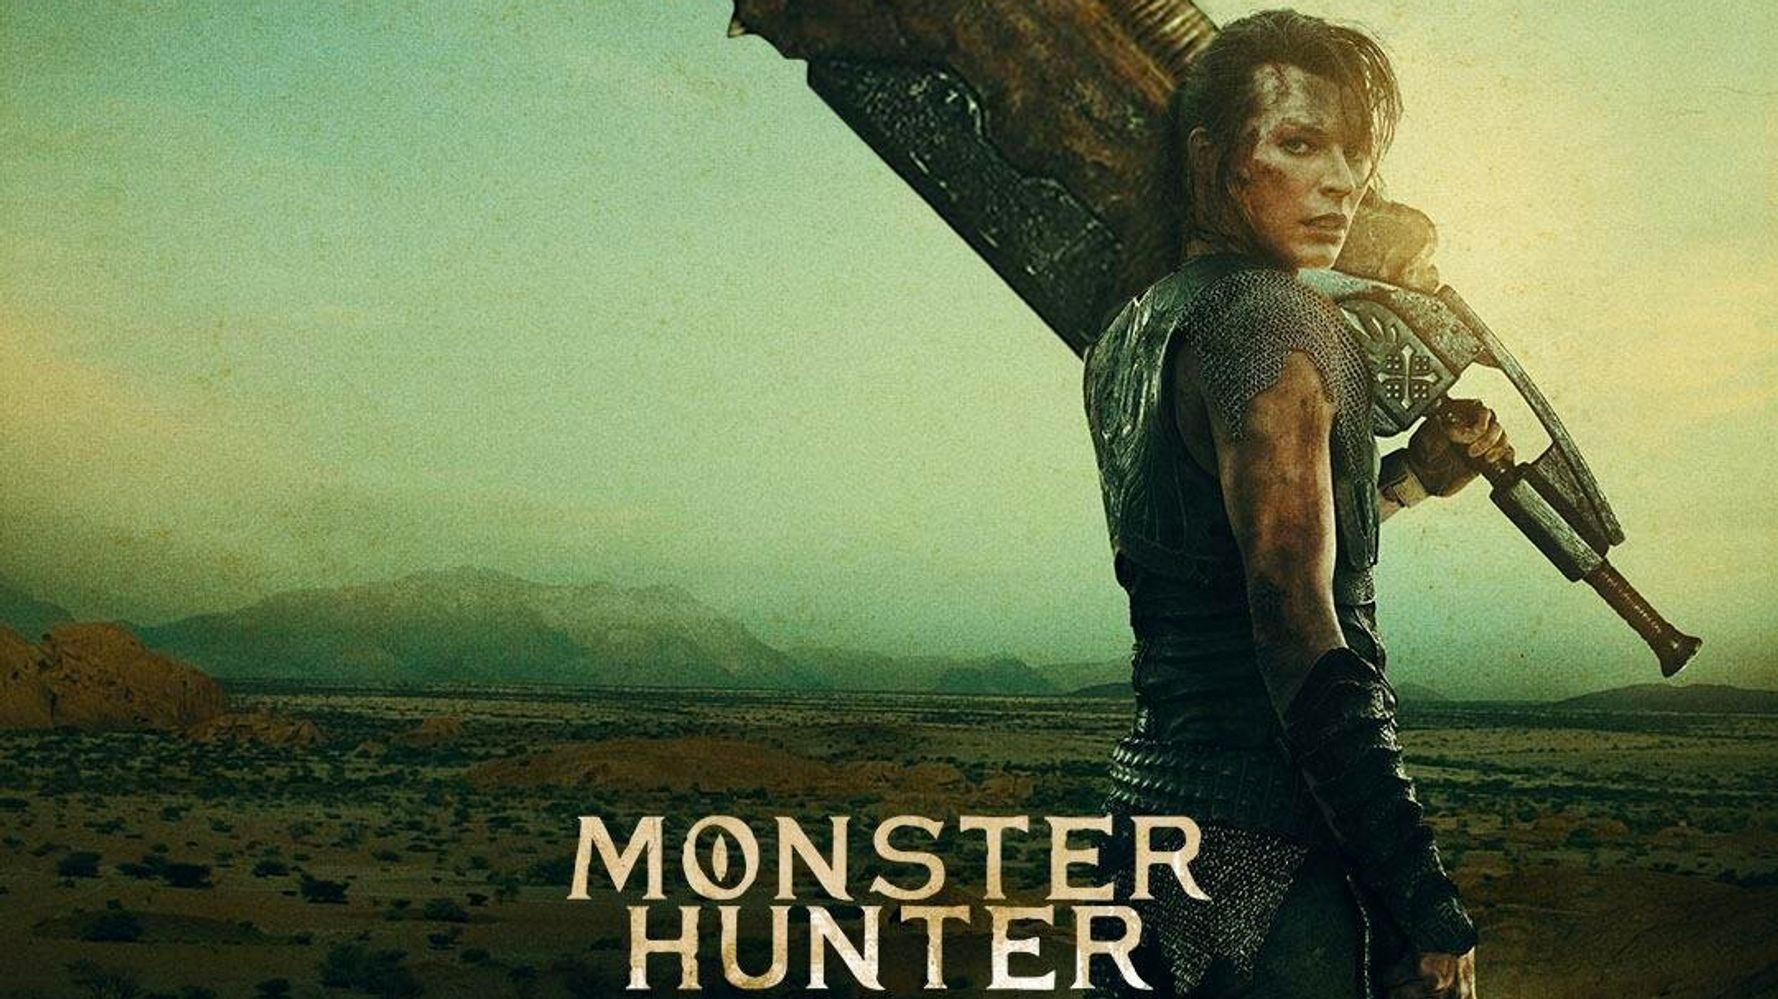 'Monster Hunter' Movie Pulled From Chinese Cinemas After 'Knees' Joke Falls Flat